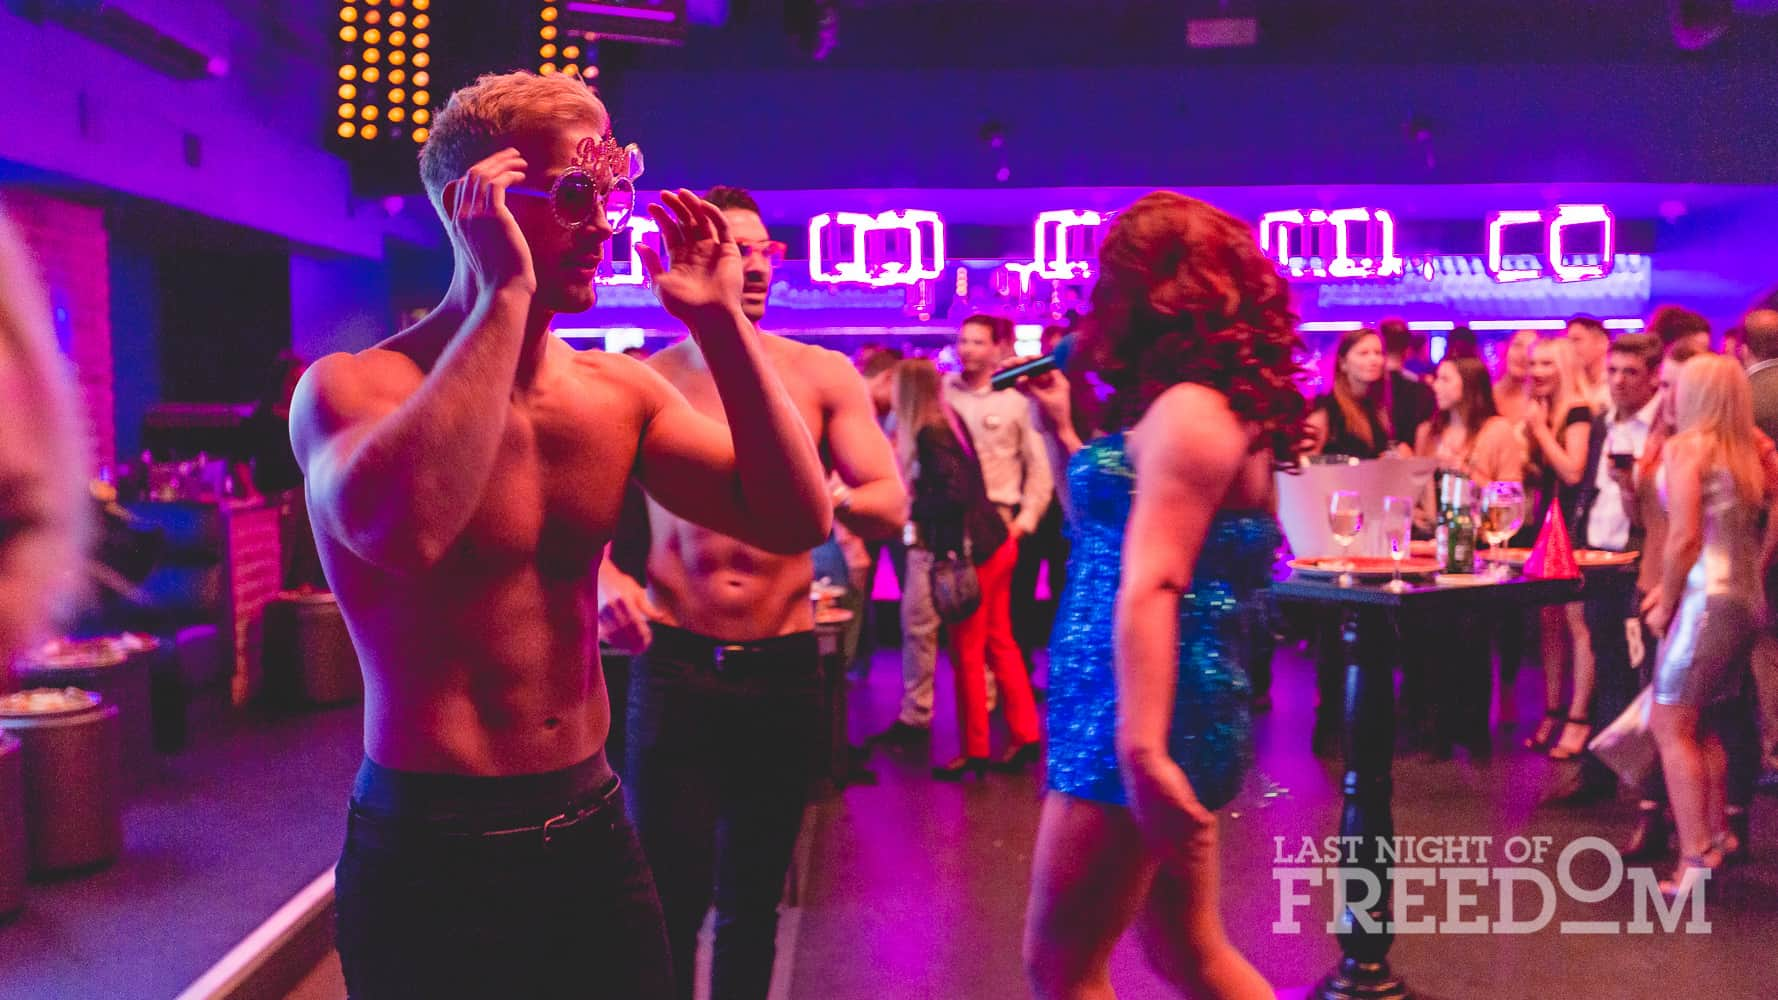 Two semi-naked men stood with a drag queen, with others in the background